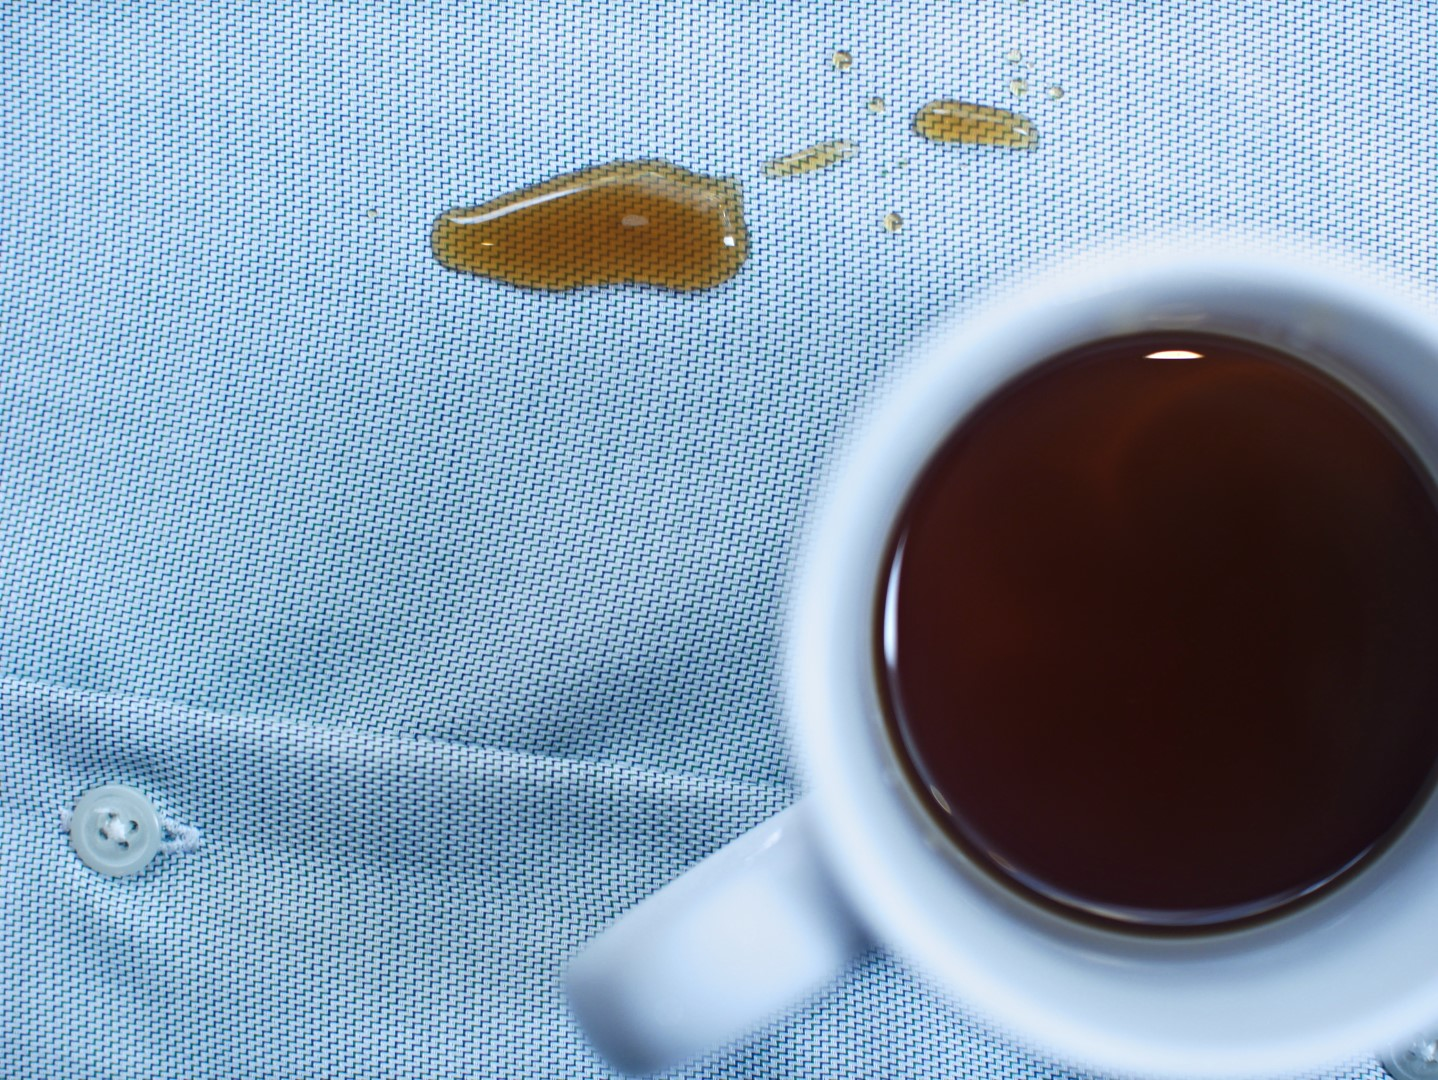 Stain Resistant - The hydrophobic coating also means stains just wipe off, whether its your daily coffee or a spot of ketchup